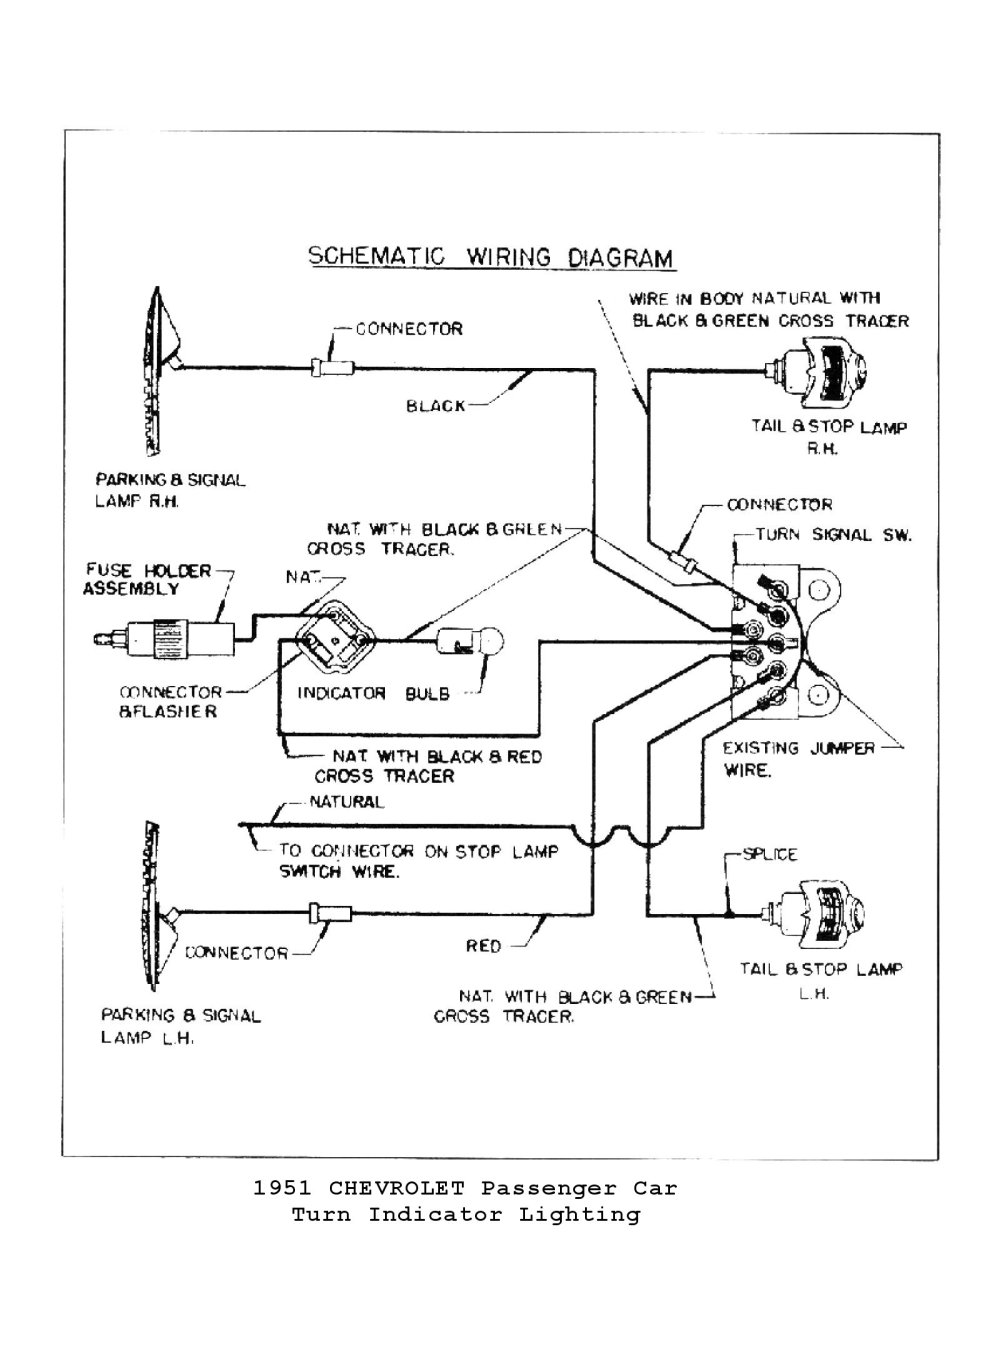 medium resolution of 1959 gmc truck headlight switch wiring wiring diagram article reviewchevy wiring diagrams 1959 gmc truck headlight